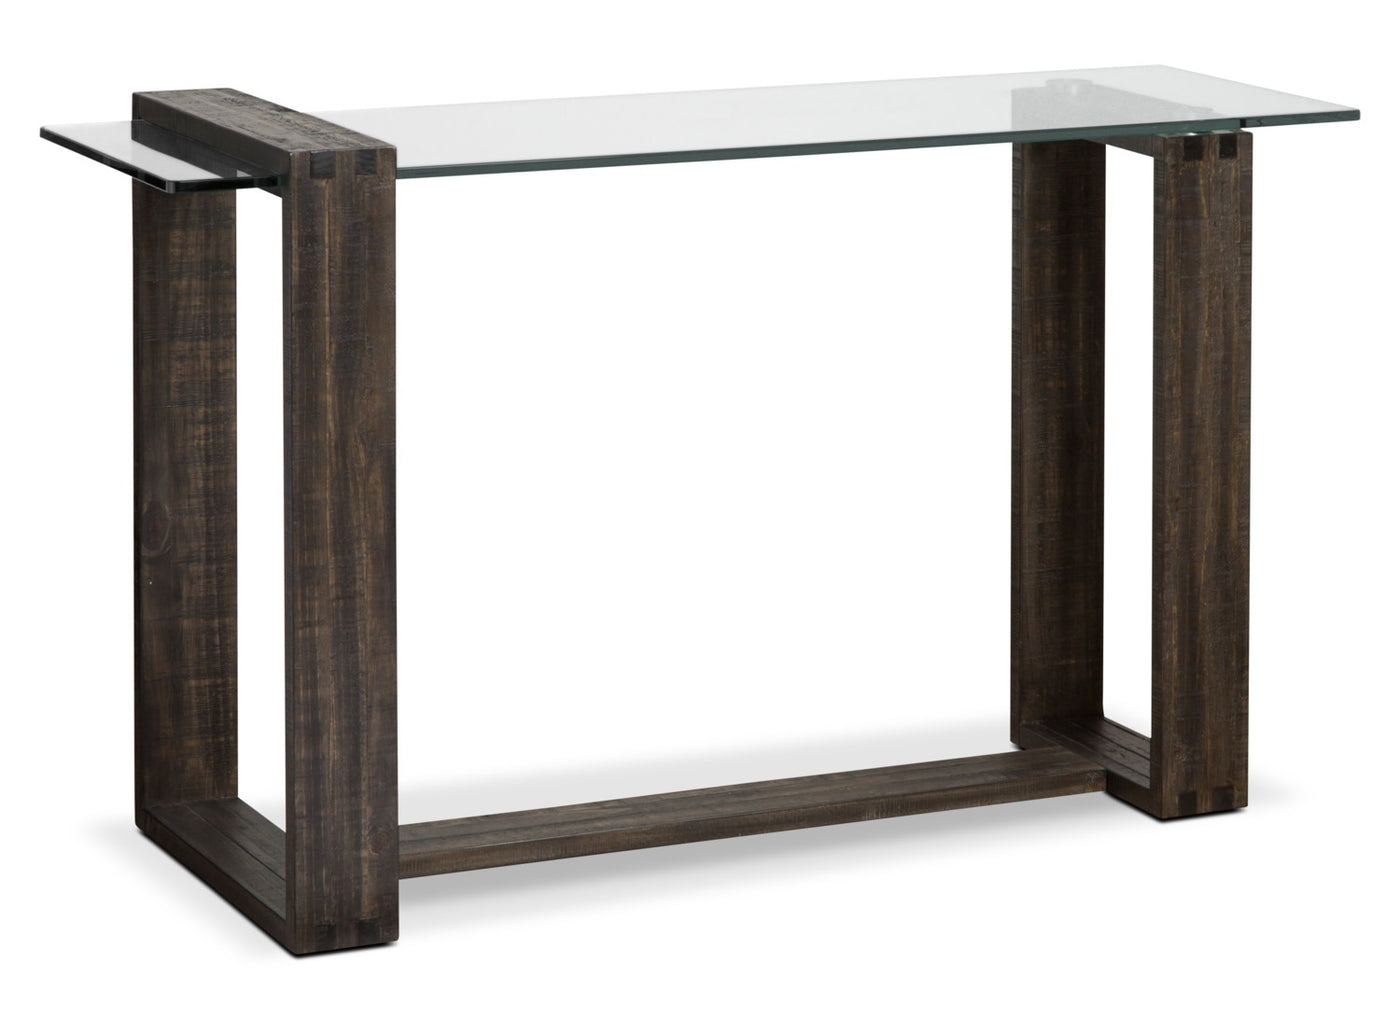 Table de salon moderne calistoga brick - Table salon moderne ...